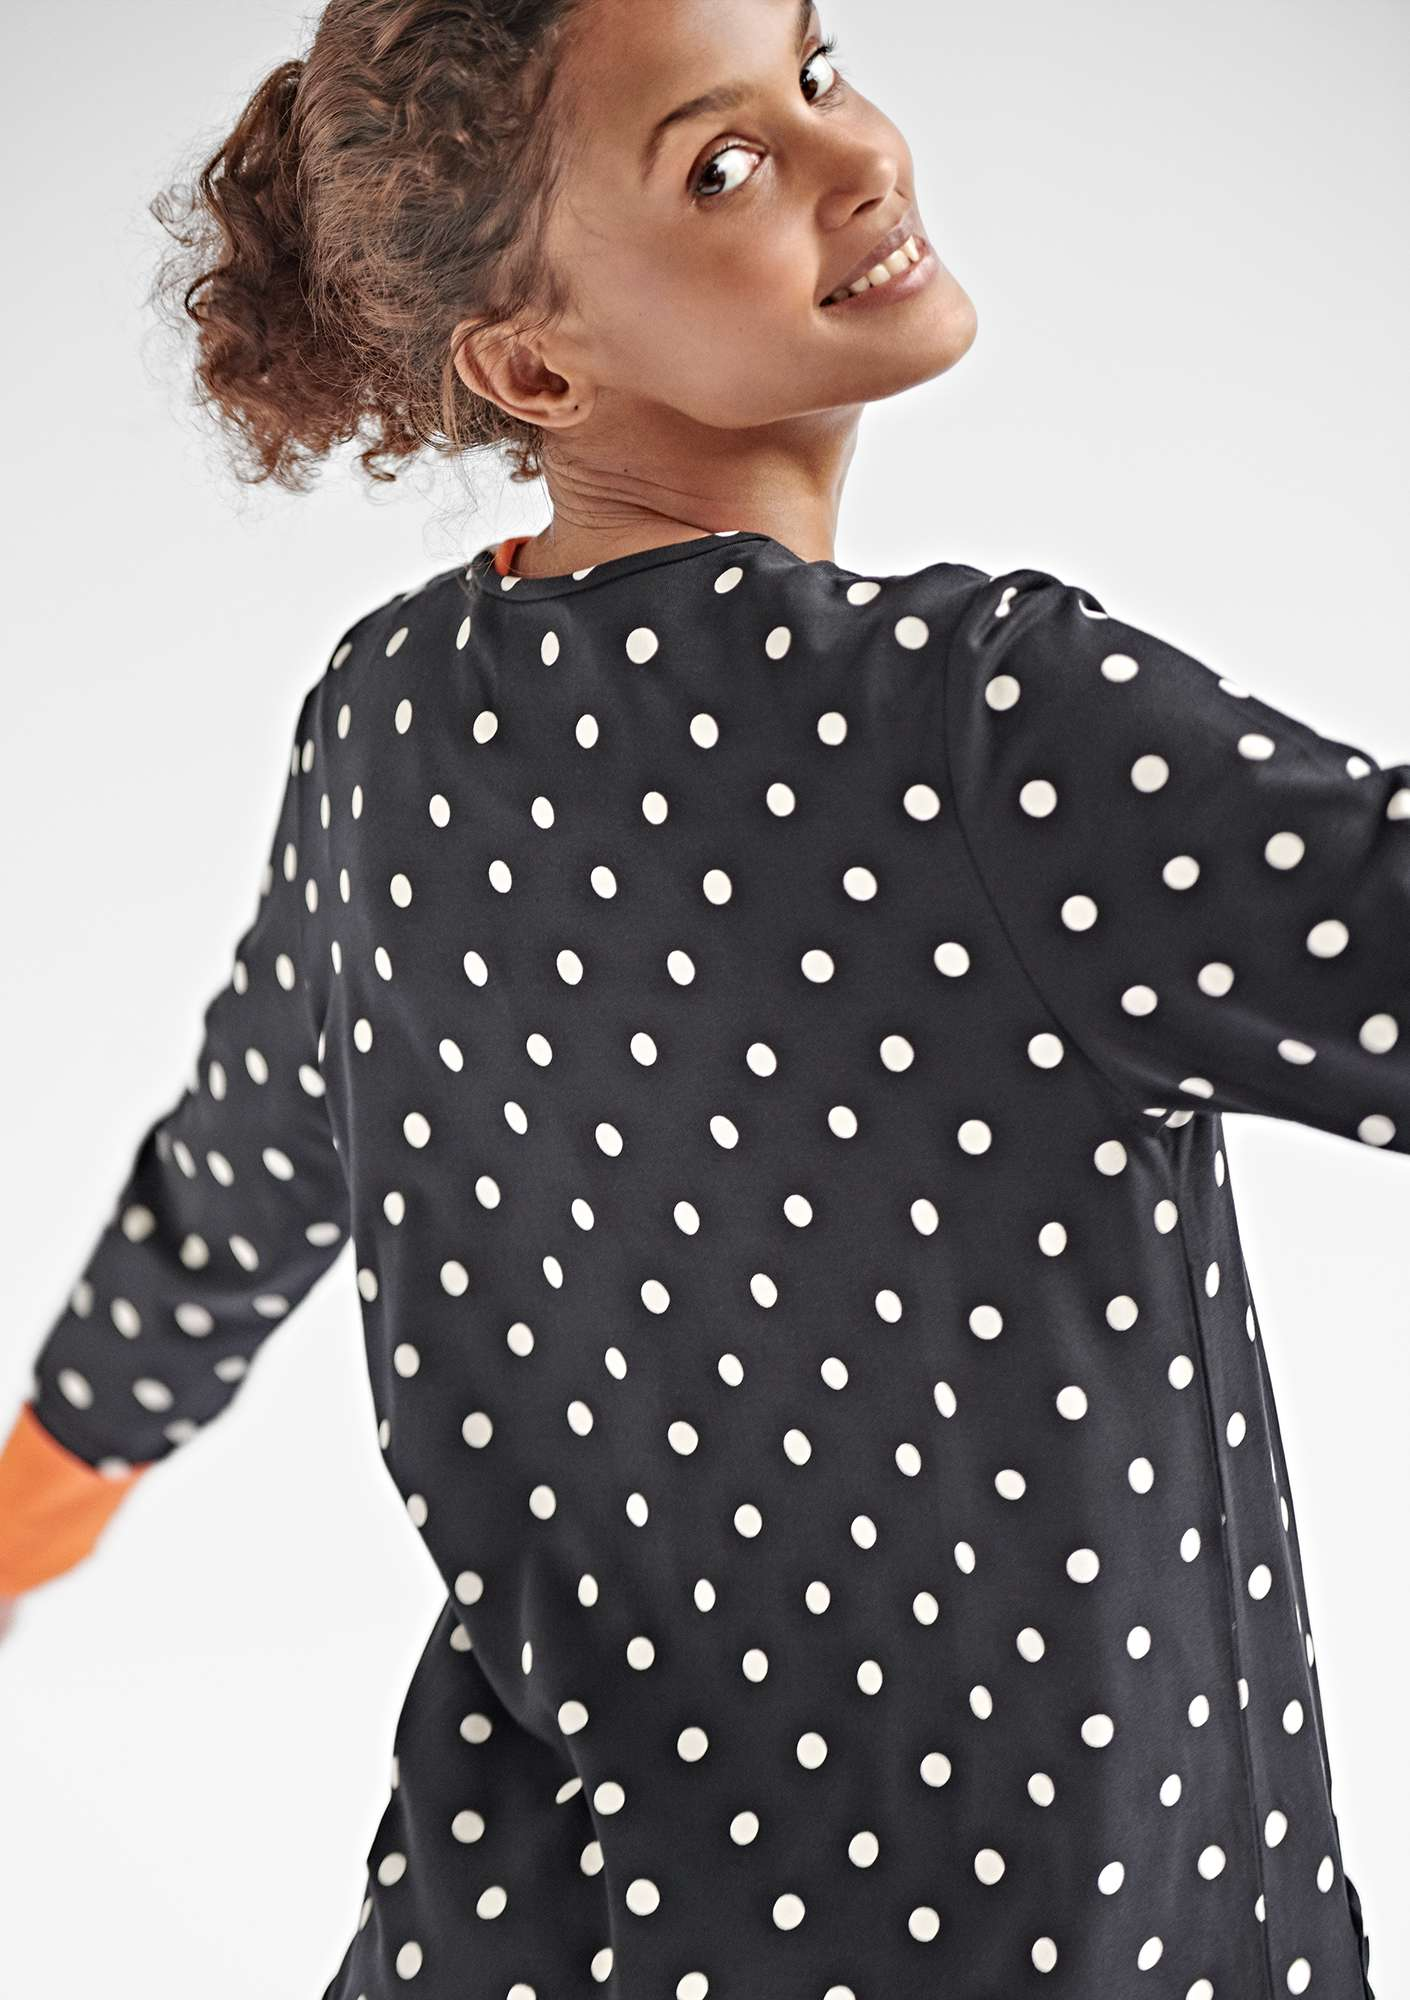 DOT dress in modal/eco-cotton/spandex black/patterned